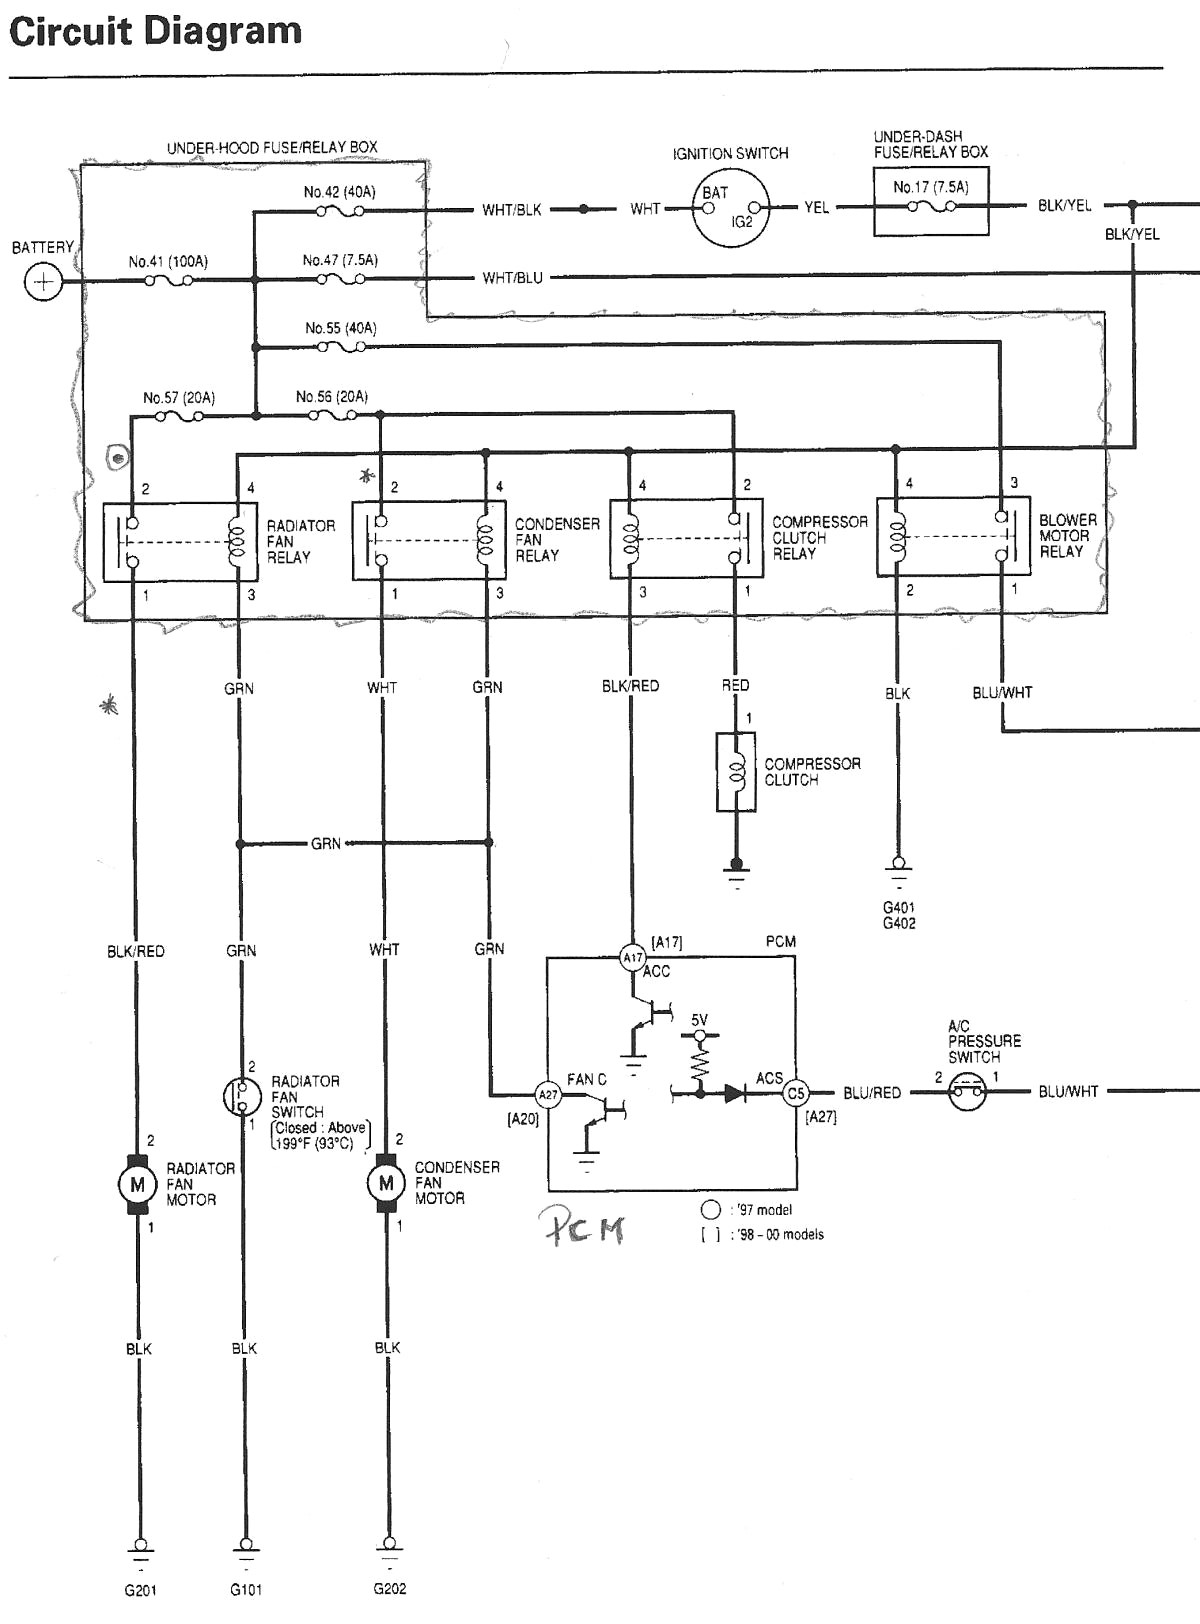 Honda Accord Engine Diagram 2003 Honda Accord Stereo Wiring Diagram and Adorable Blurts Of Honda Accord Engine Diagram